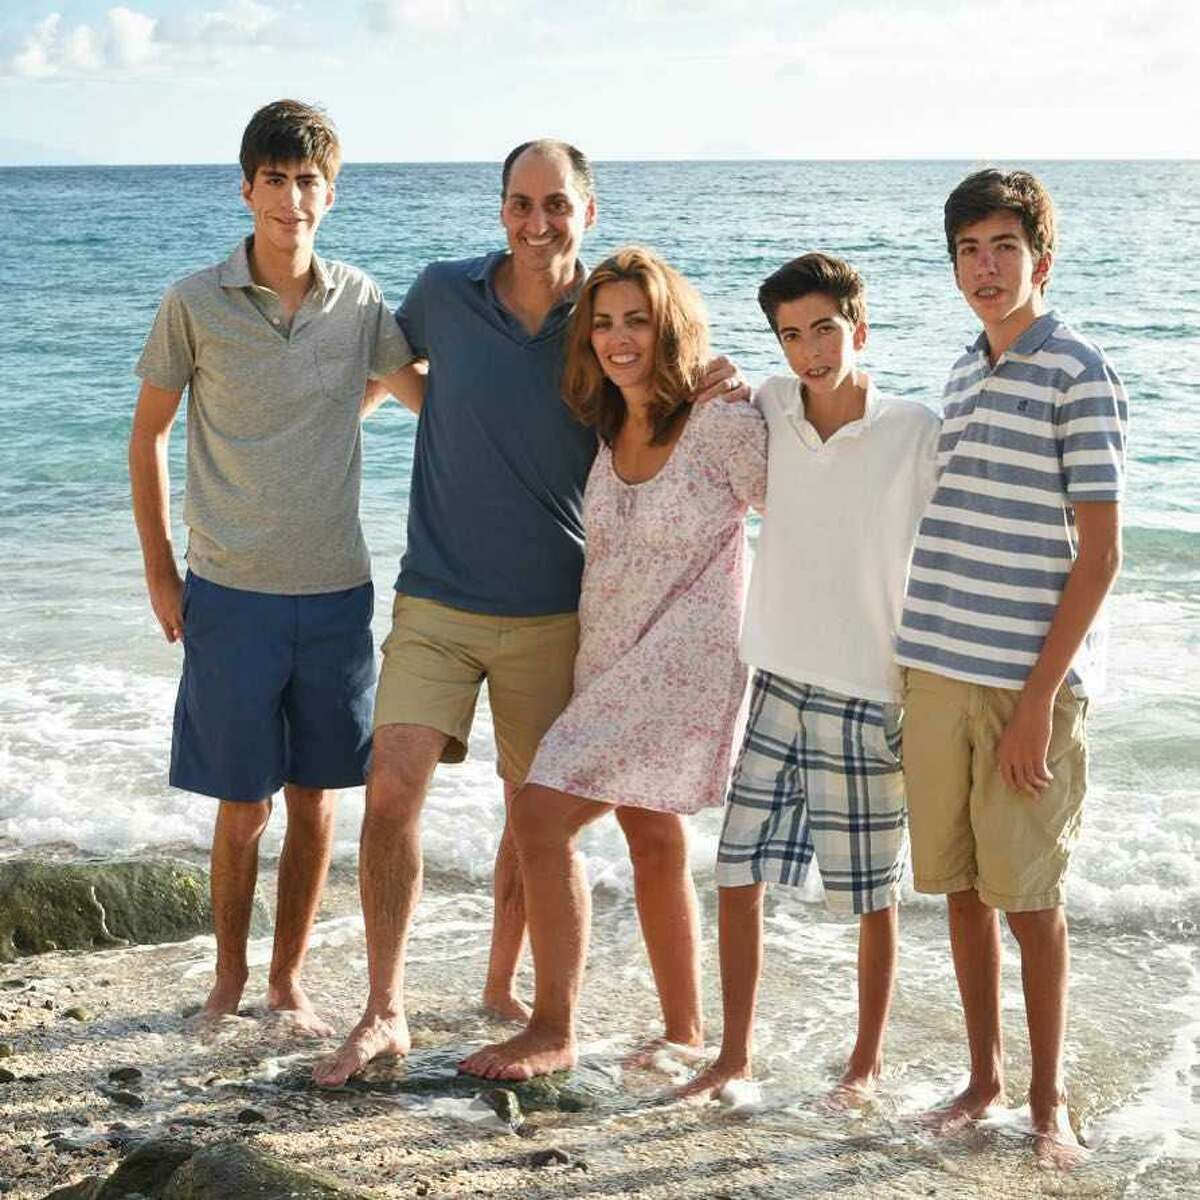 Lisa Lori of Greenwich began fundraising for Operation Smile after her three sons -- Zack (18), Luke (16), and Griffin (15) were born with physical challenges.